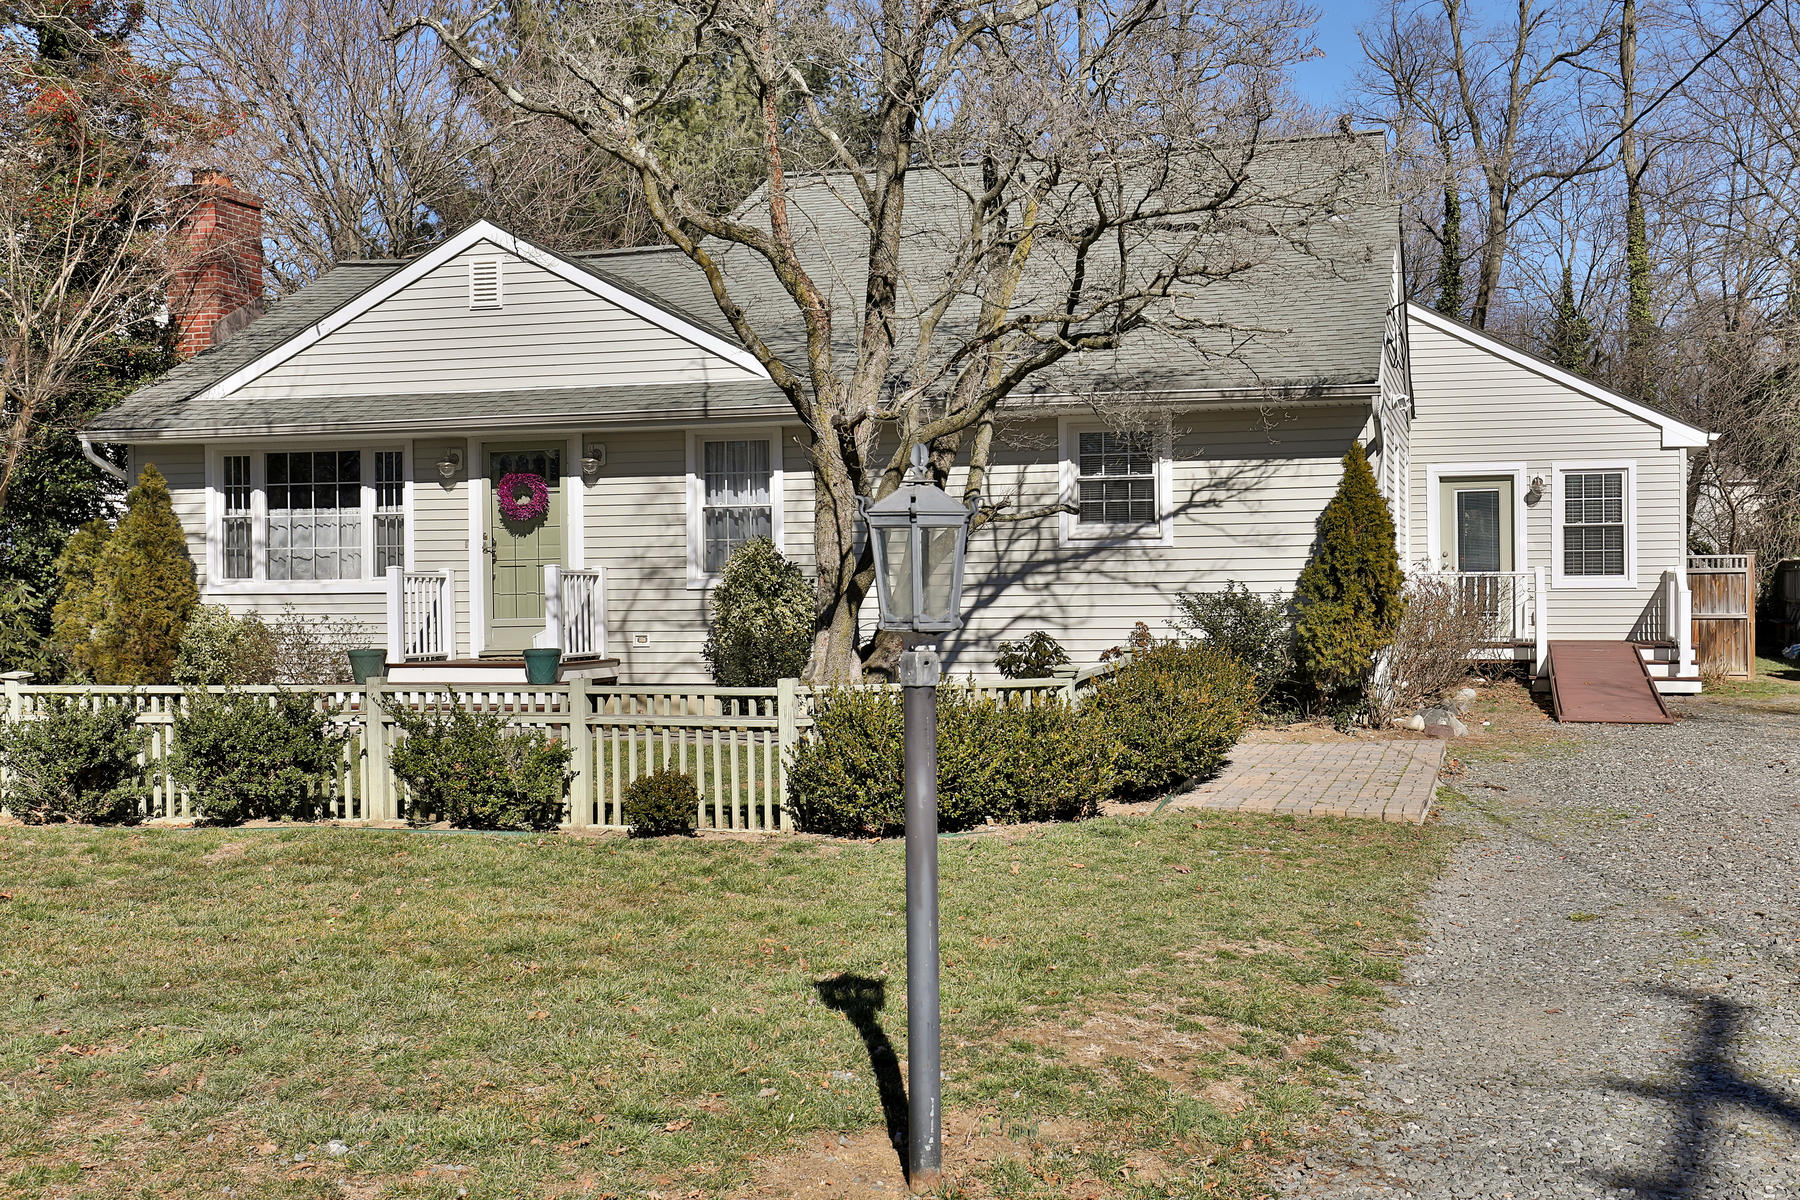 Single Family Home for Sale at Fair Haven Custom Cape 233 Hance Rd Fair Haven, New Jersey, 07704 United States